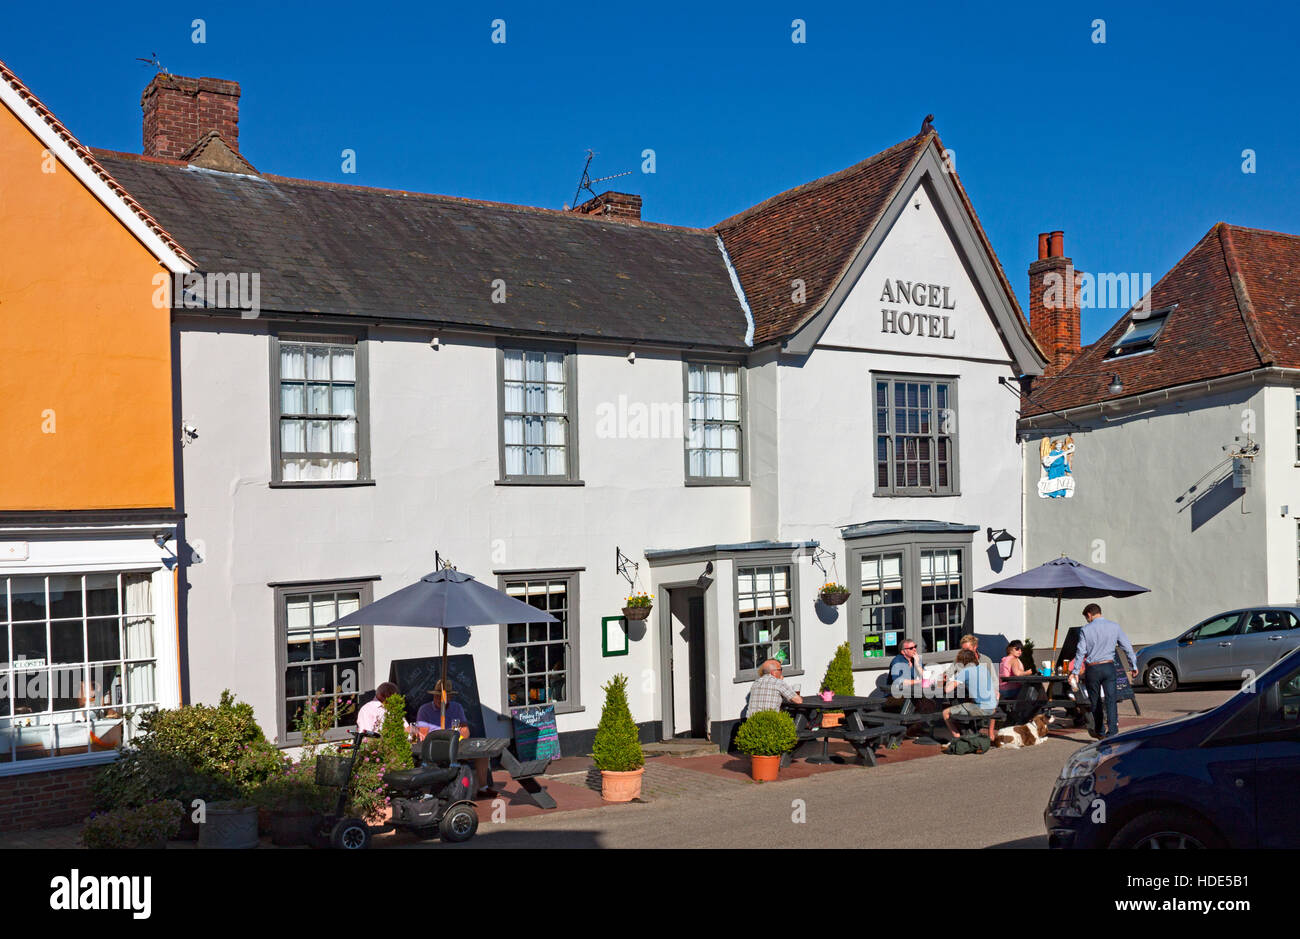 The Angel Hotel in the main square, Lavenham, Suffolk. A picturesque historic village. Stock Photo